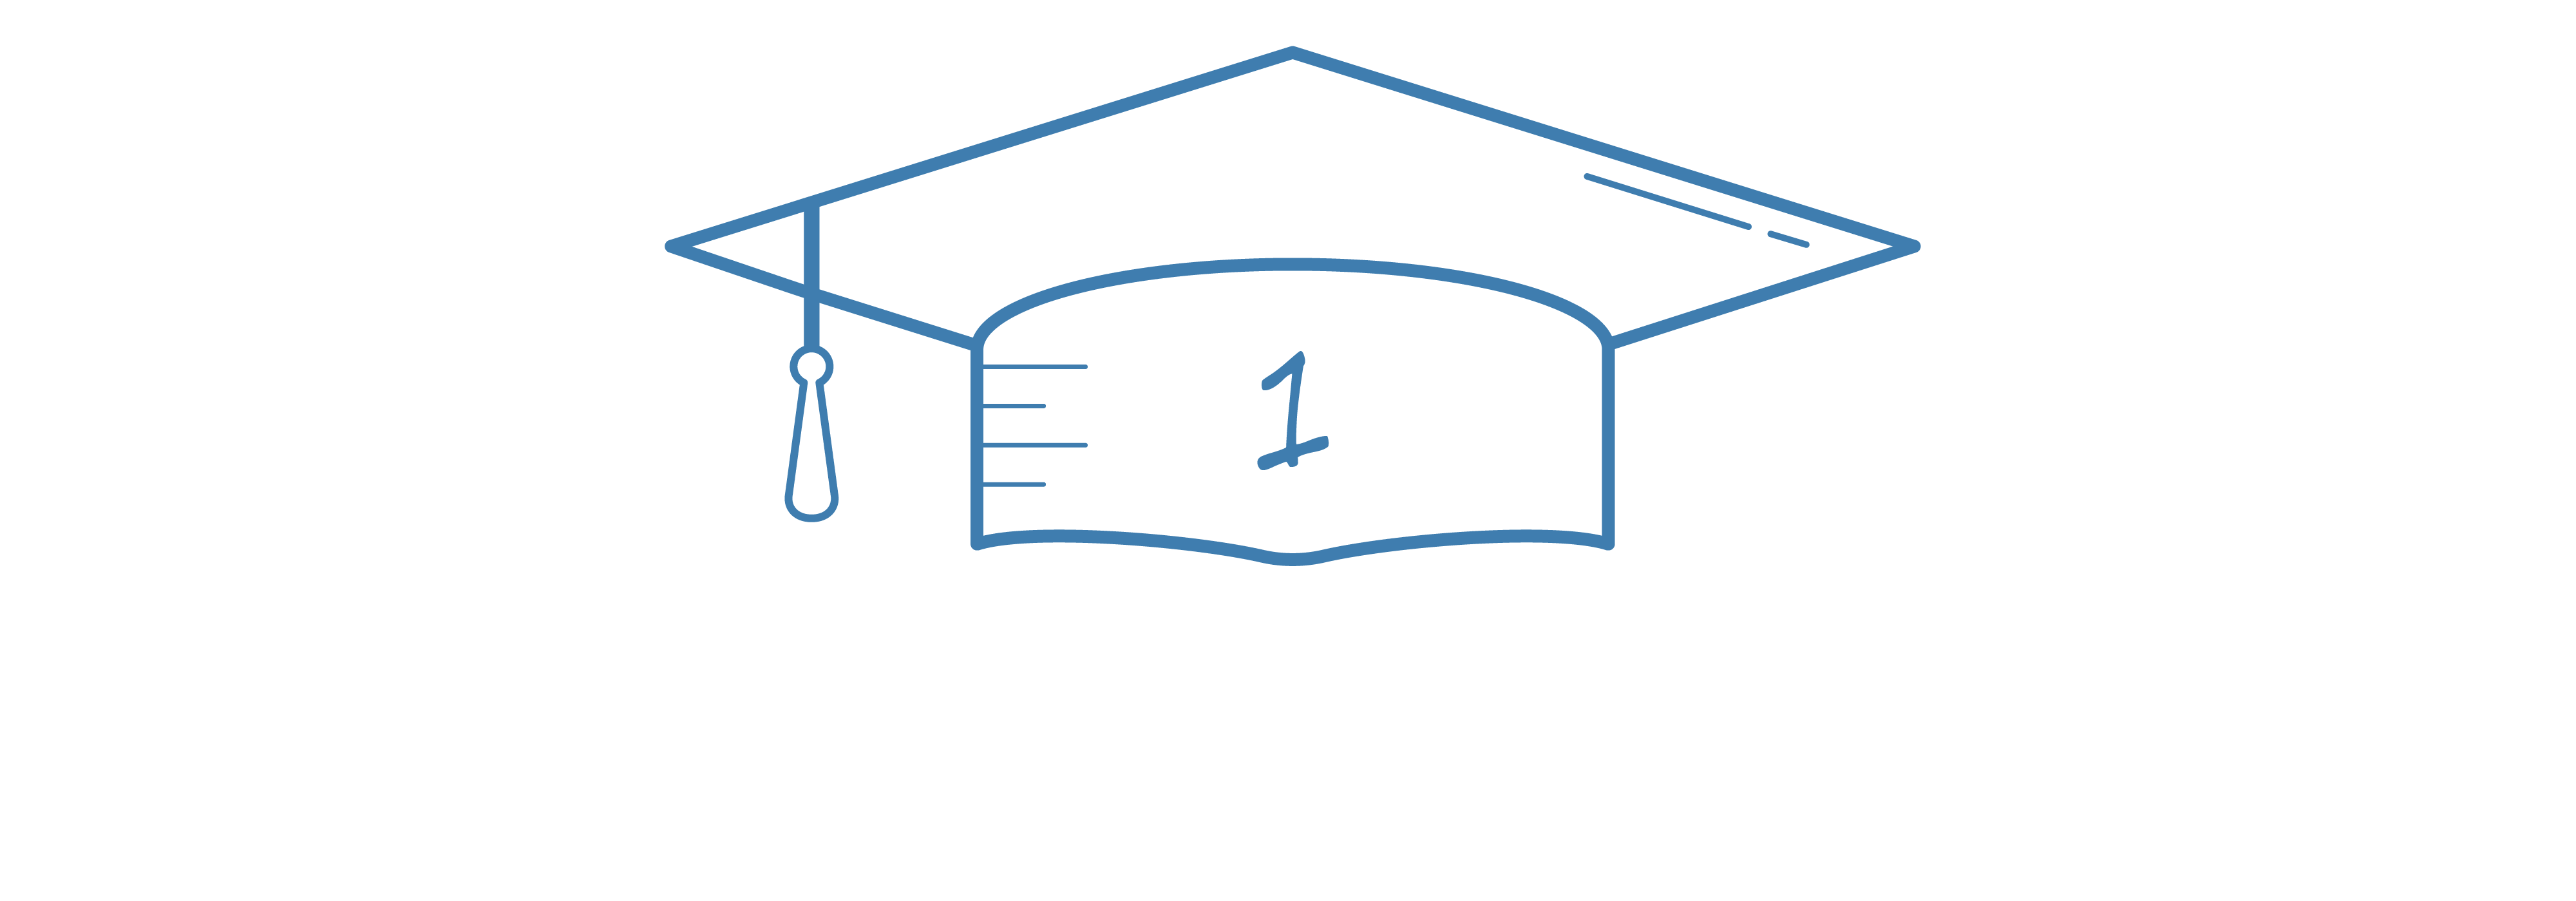 Capture One Academy Logo PNG